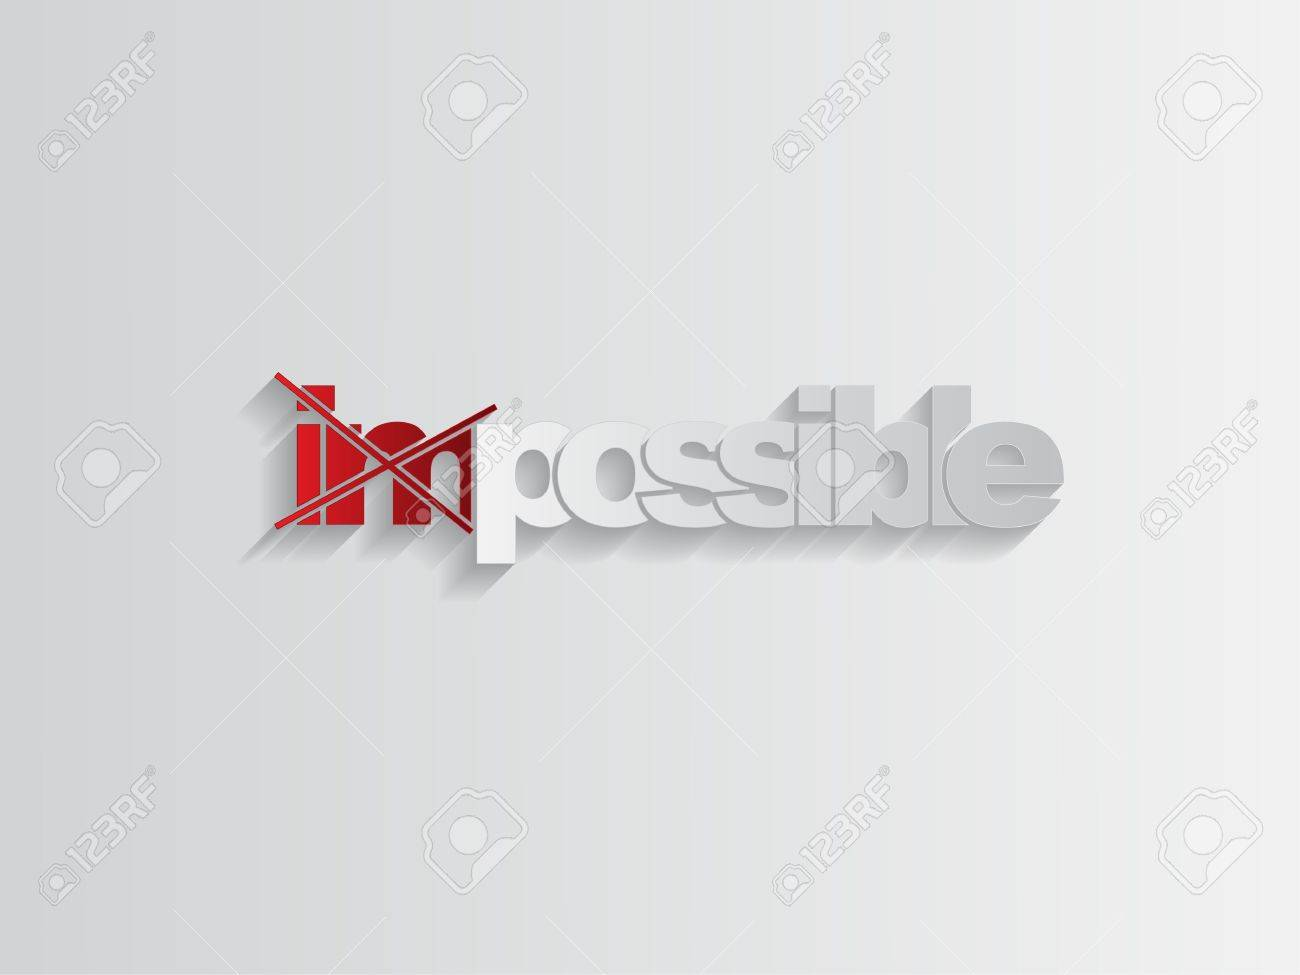 Word impossible transformed into possible, motivation concept Stock Vector - 17853394